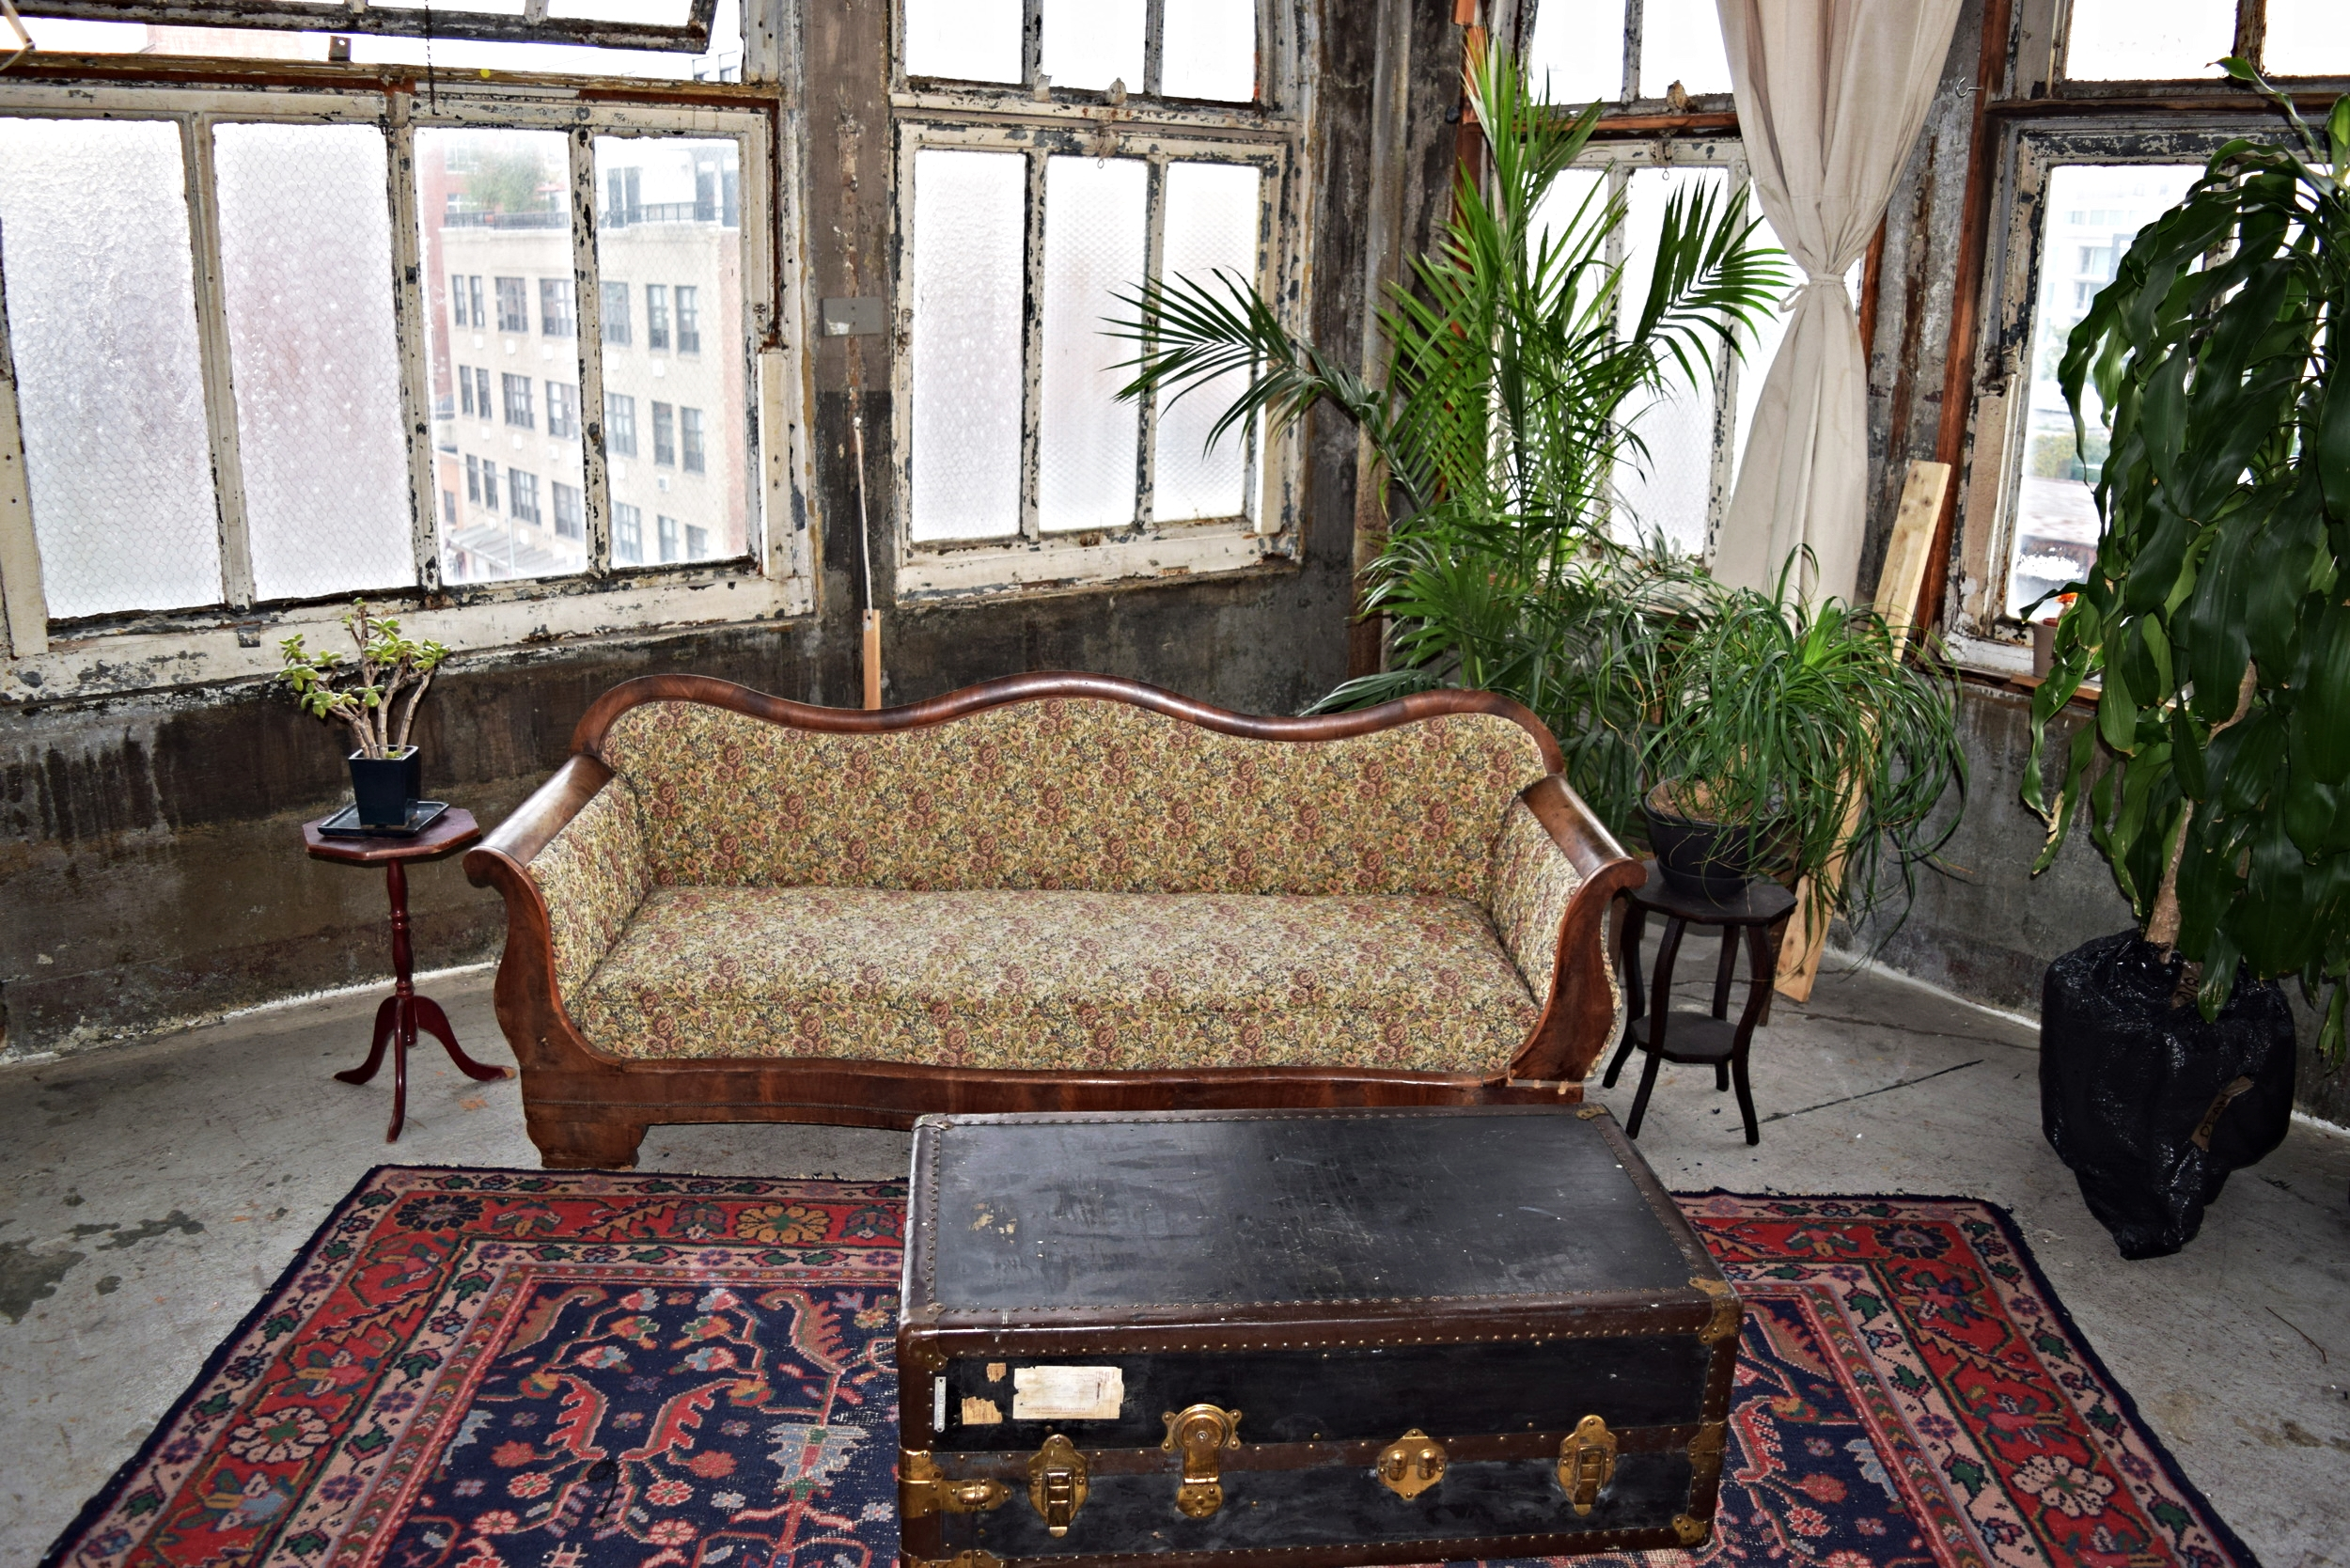 Vintage sofa, distressed Persian rug, steamer trunk, side tables and plants